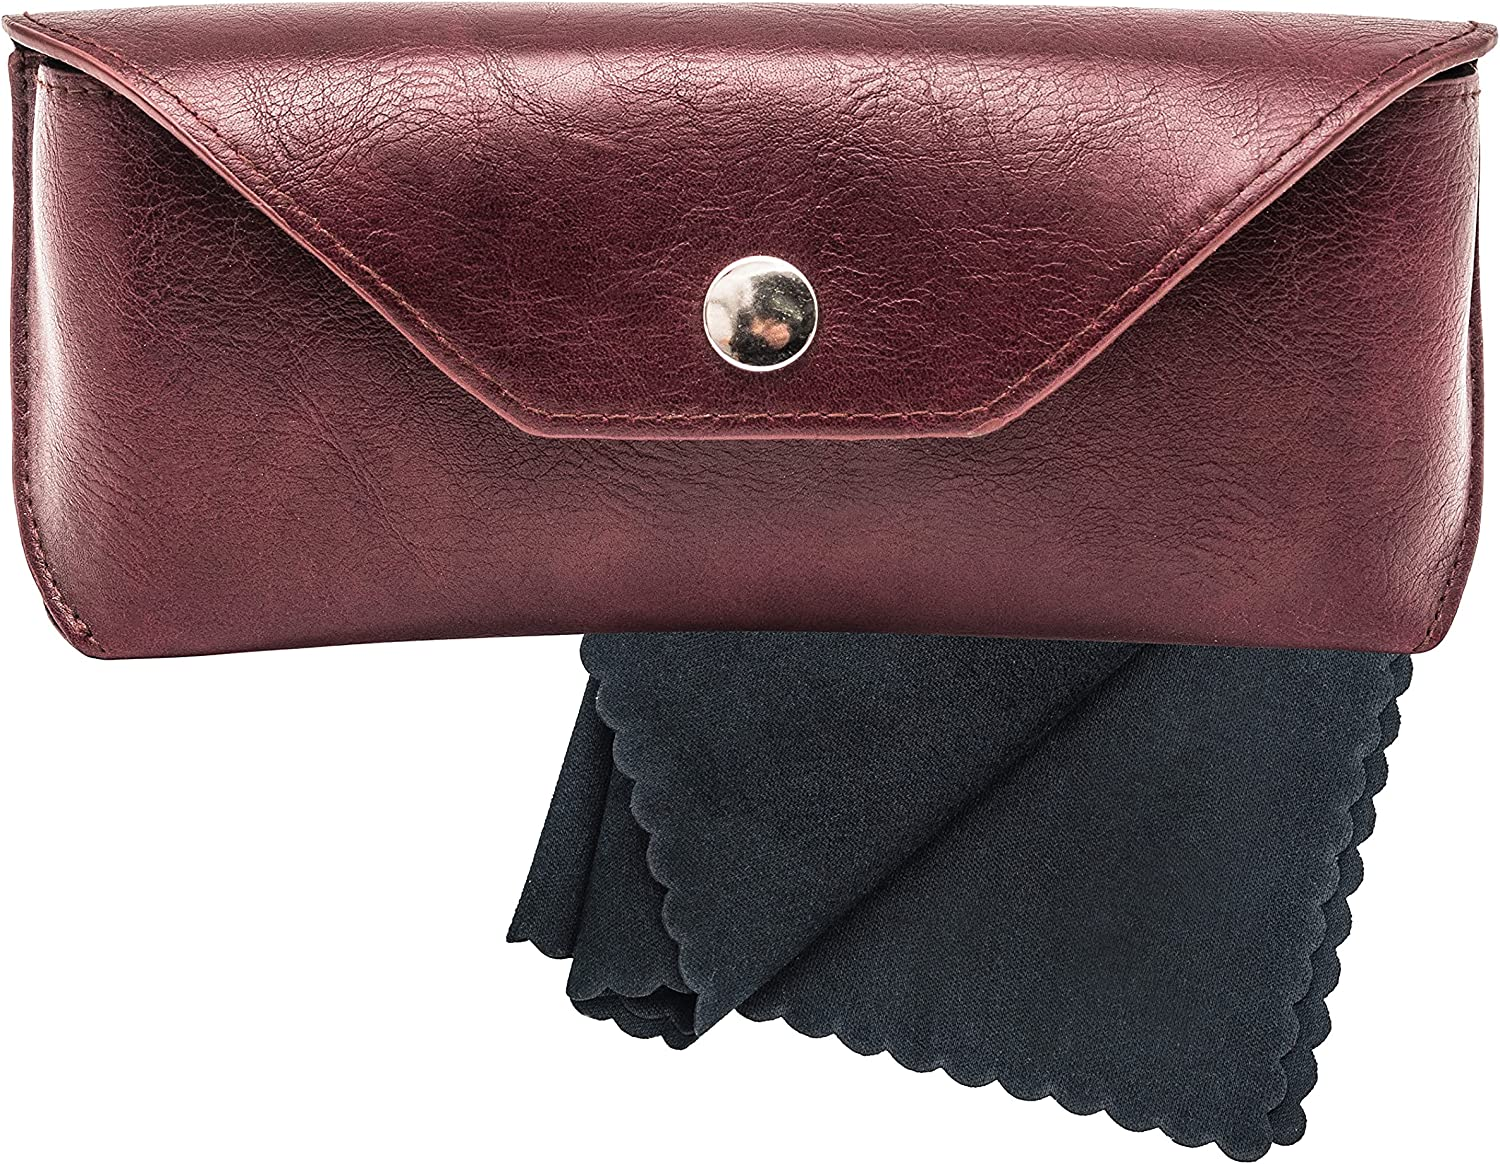 Large PU Leather Glasses Case Holder with Microfiber Cleaning Cloth